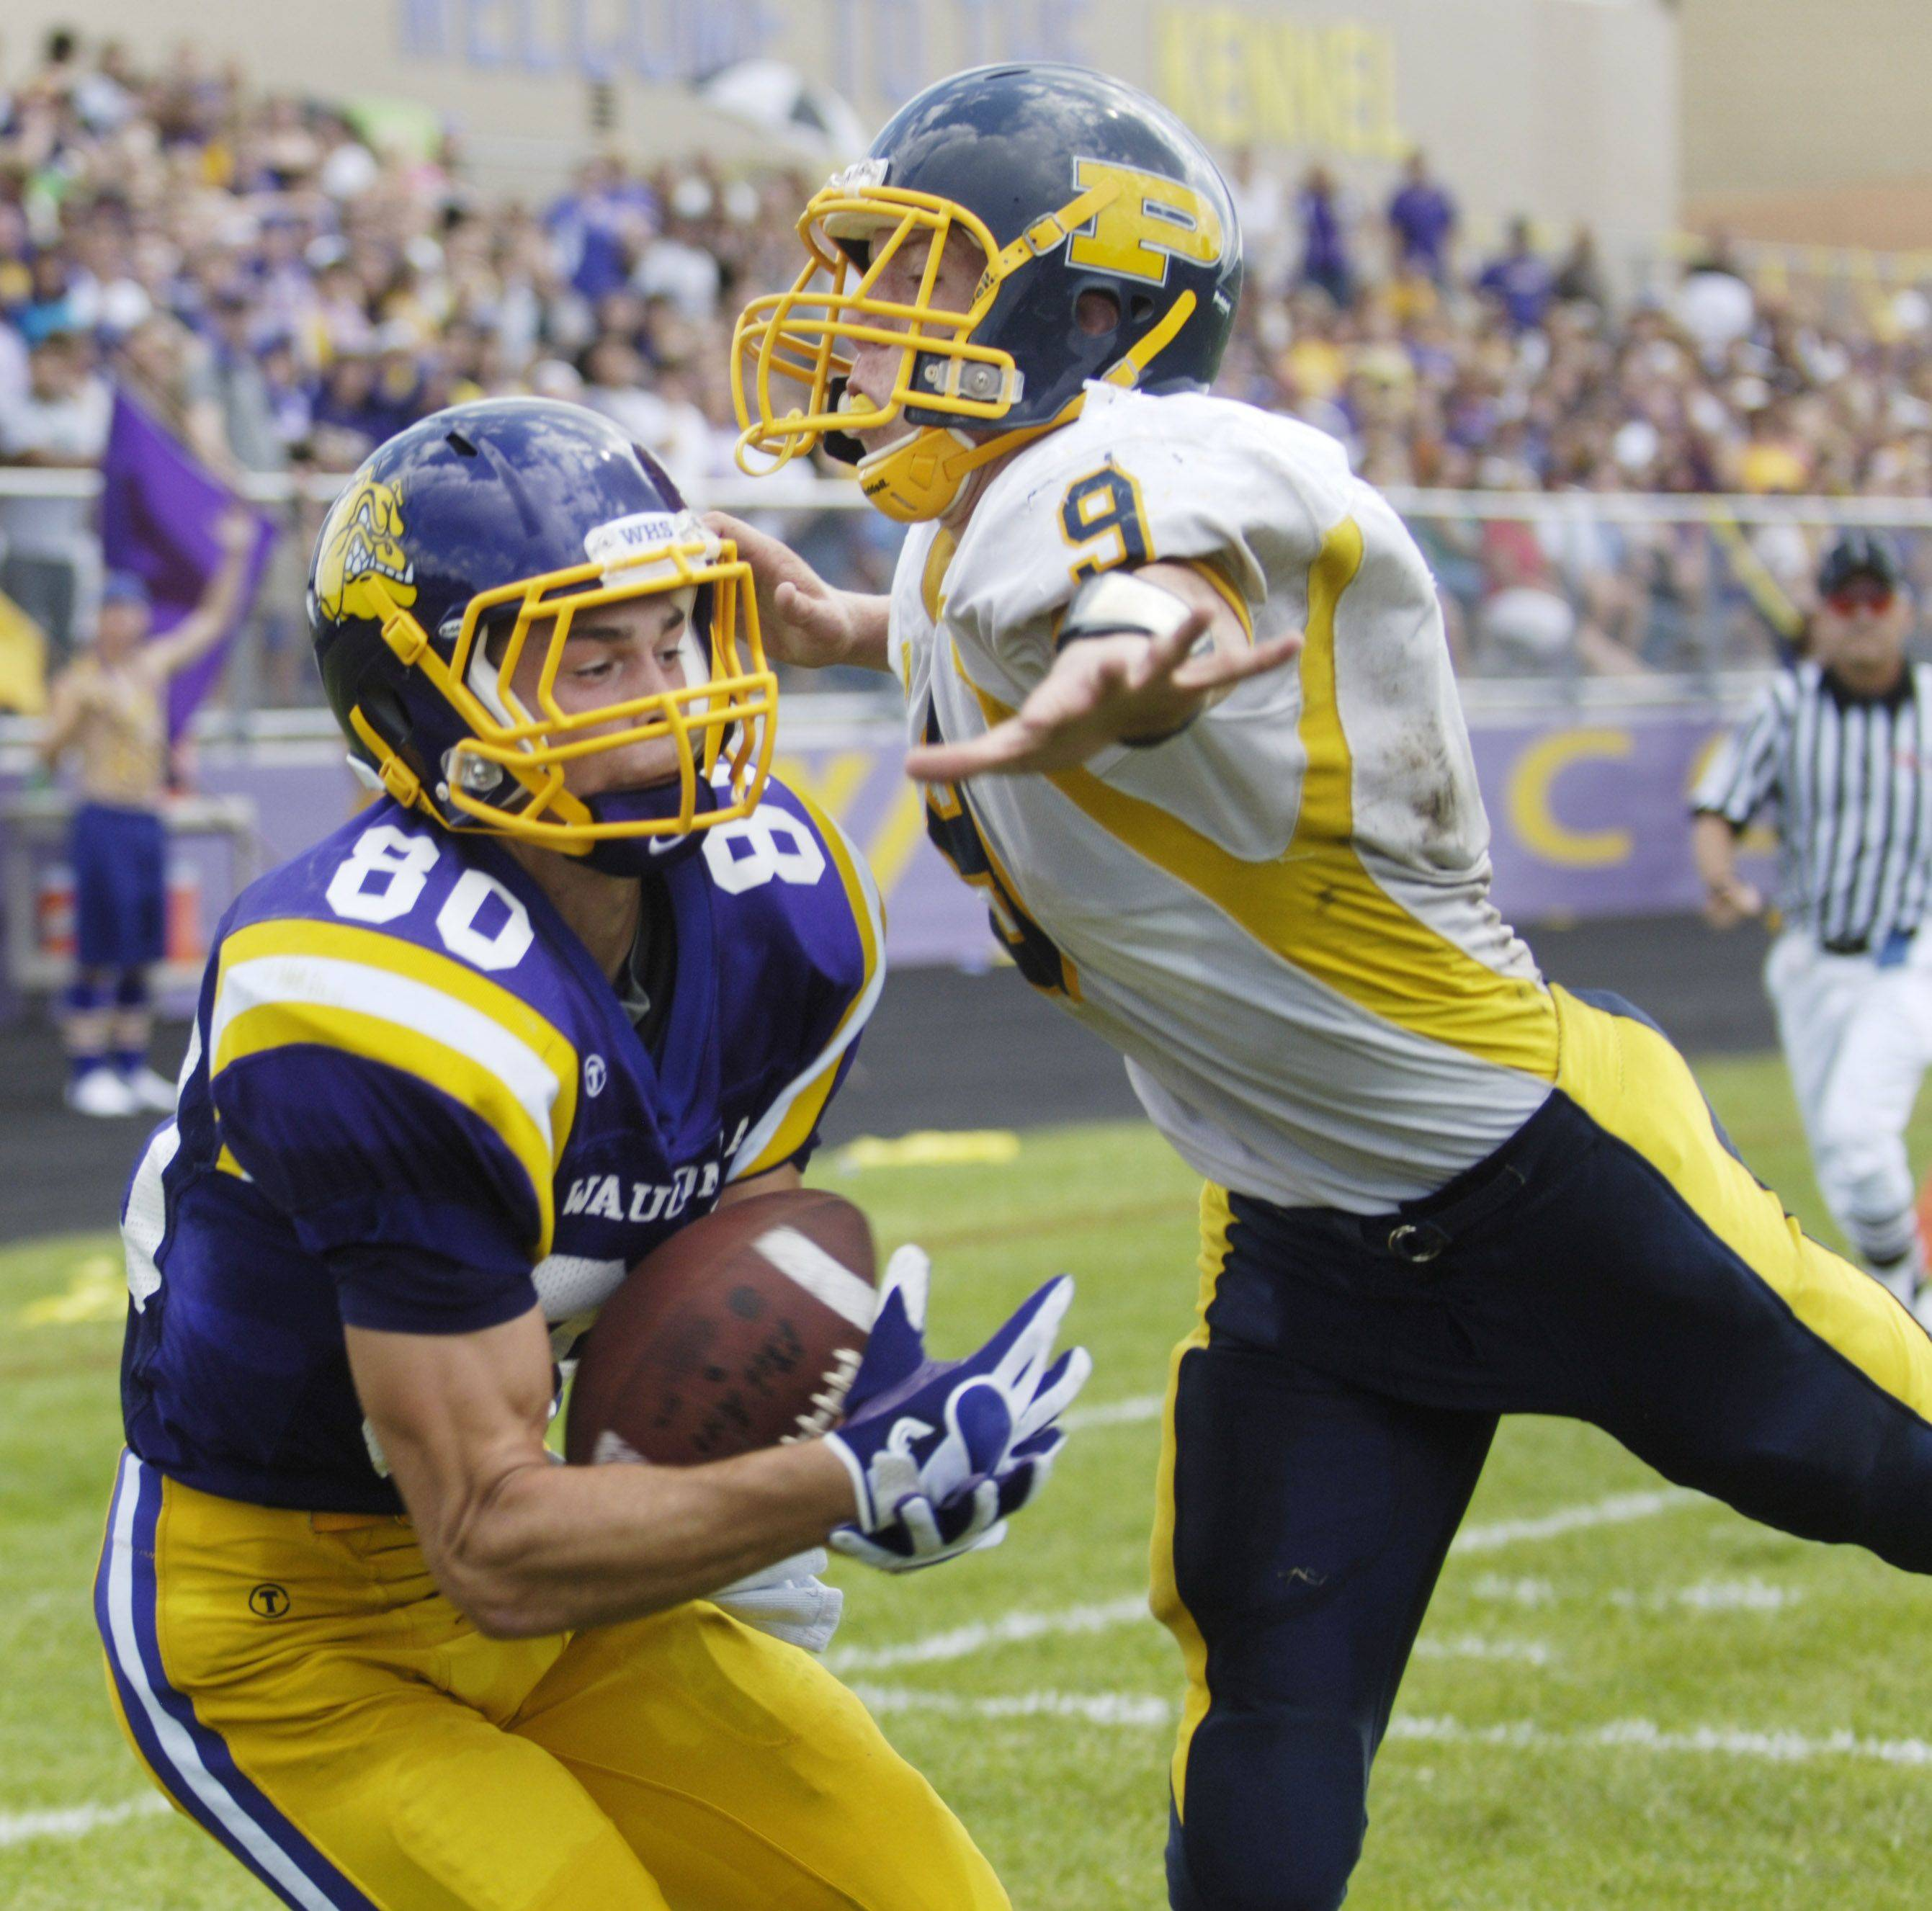 At left: Wauconda�s Jake Ziolkowski catches a touchdown pass in the end zone just past the outstretched hand of Round Lake�s Anthony Burton.